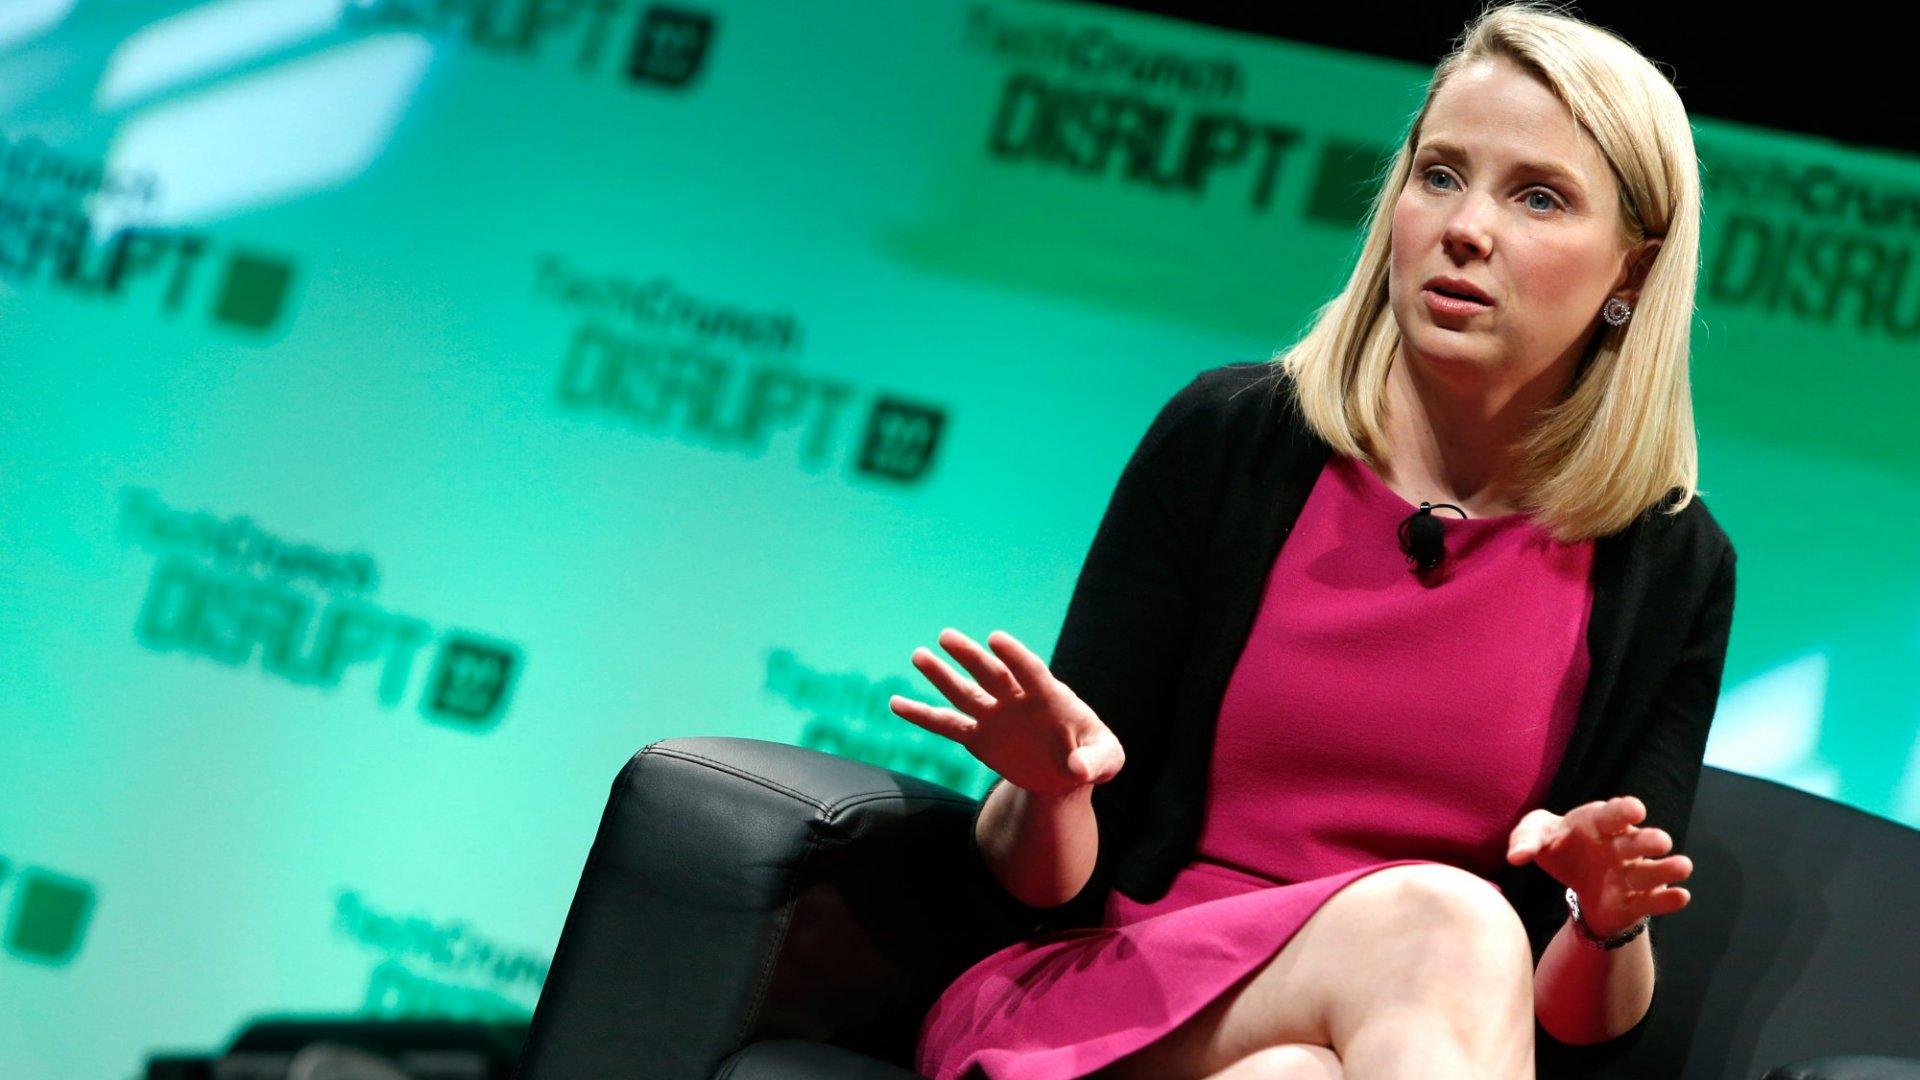 Yahoo Reportedly Asking for $10 Billion for Its Core Business